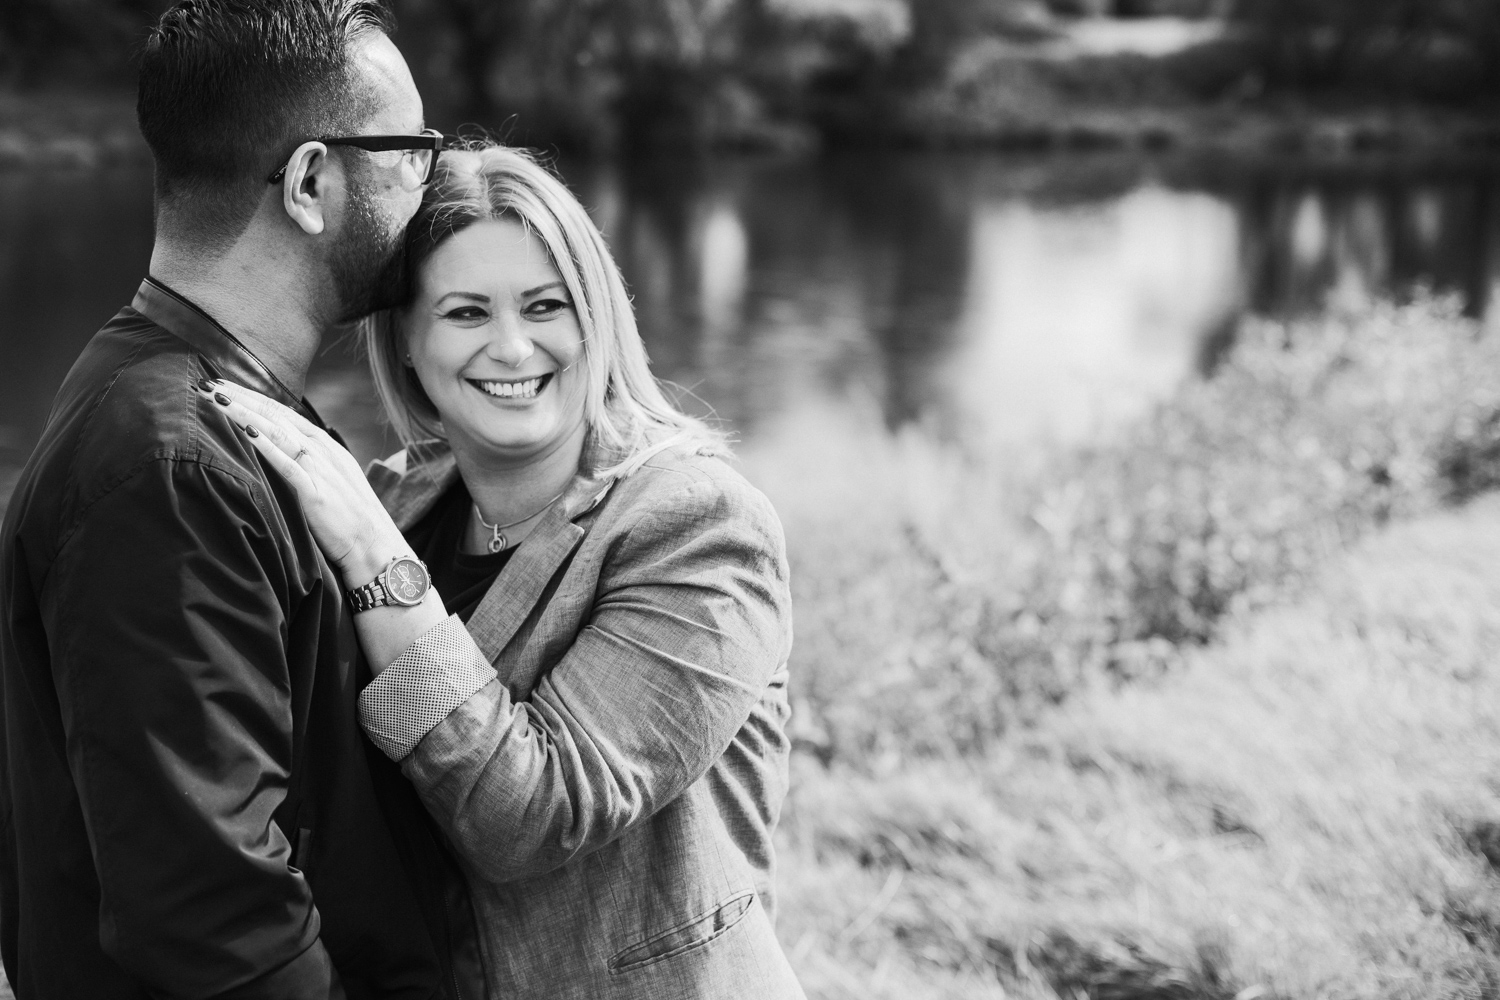 brockholes_preston_pre_wedding_shoot-2.jpg